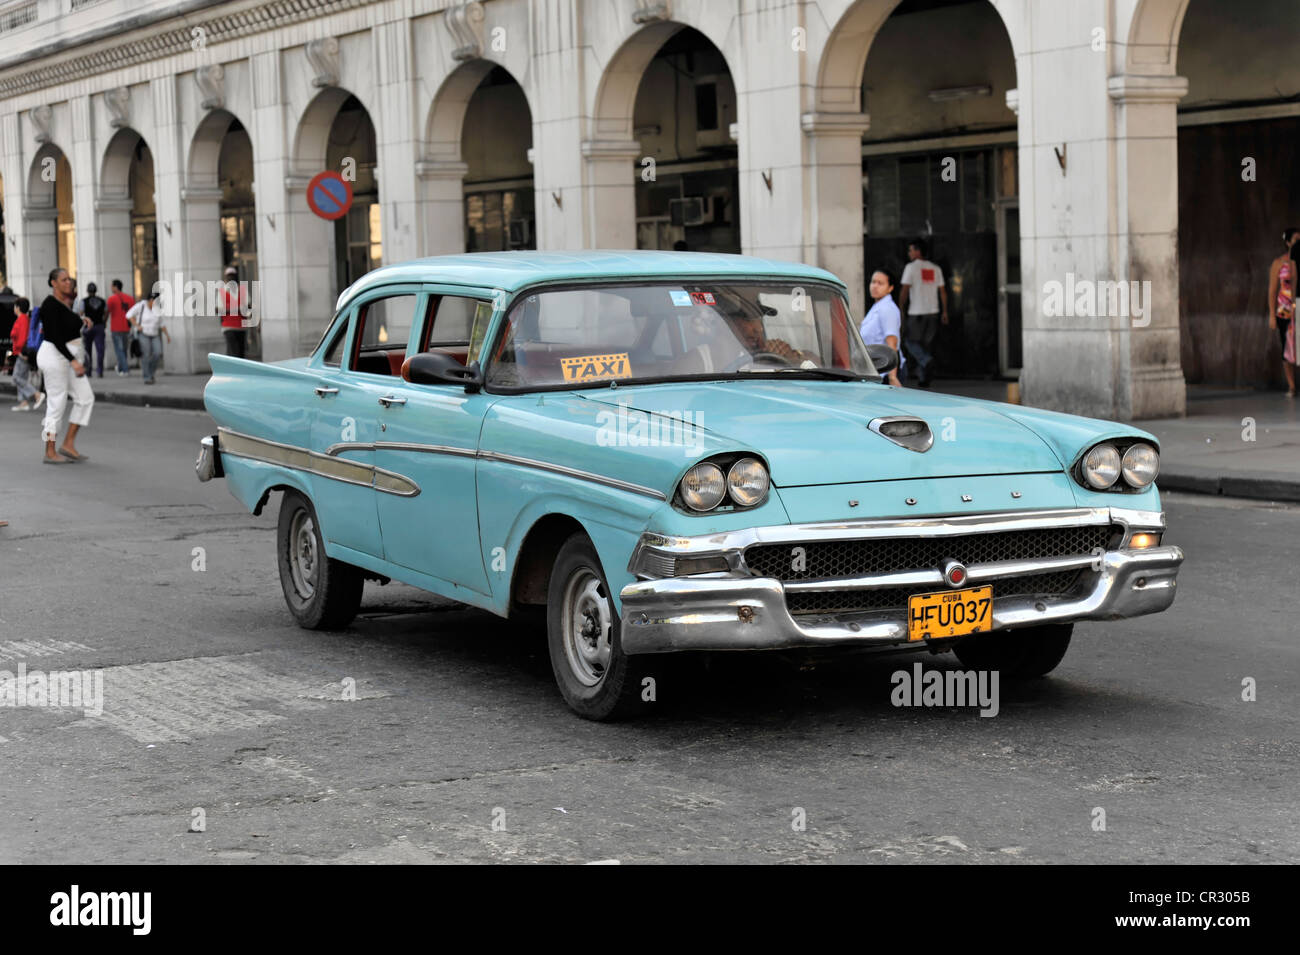 Taxi, vintage Ford car from the 50s in the centre of Havana, Centro